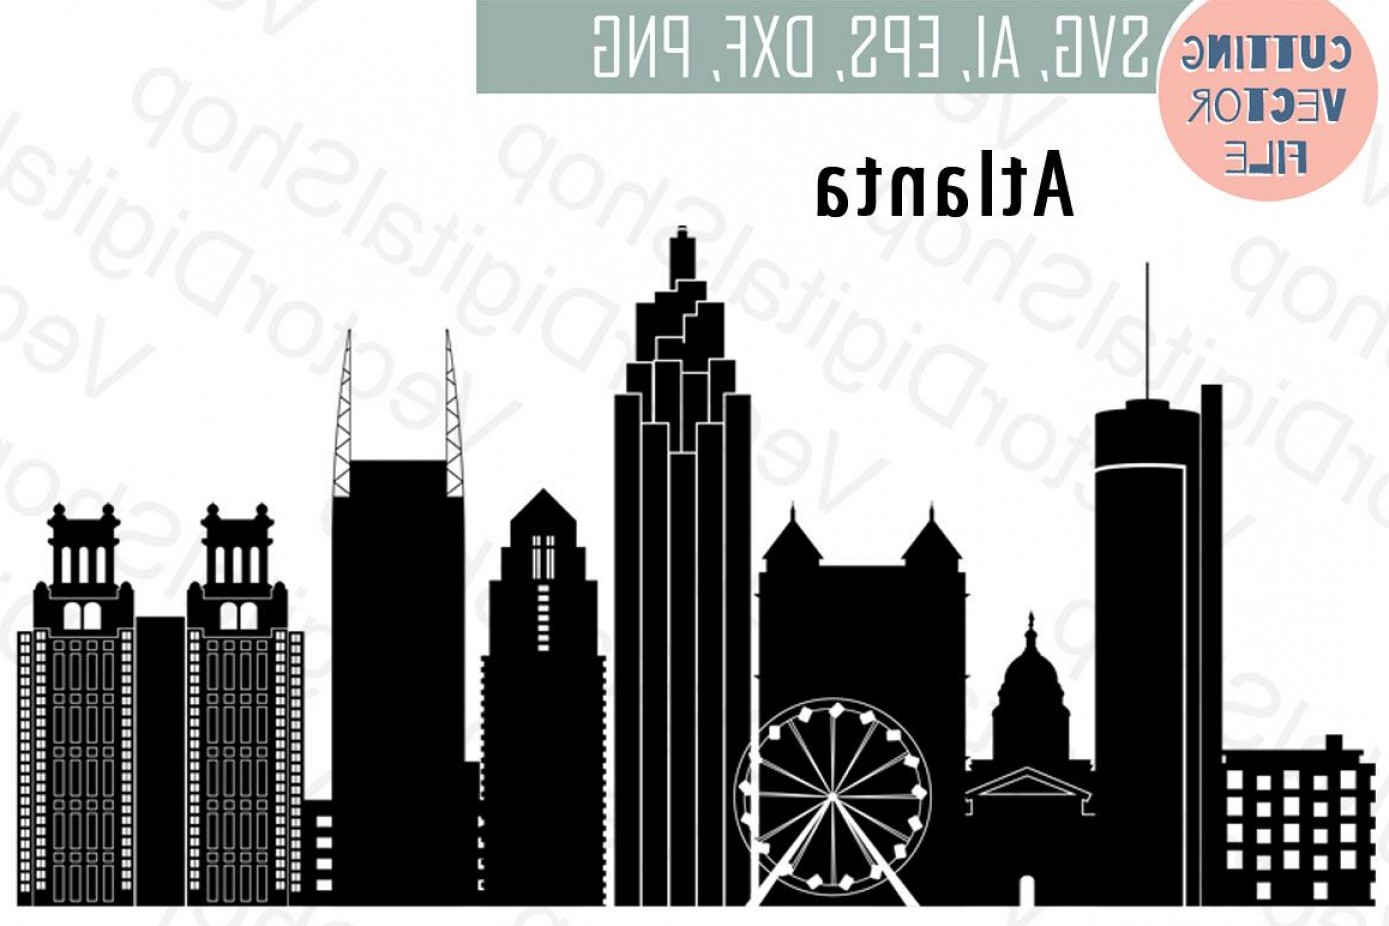 1389x926 Atlanta Vector Georgia Skyline Usa City Svg Jpg Png Dwg Cdr Eps Ai